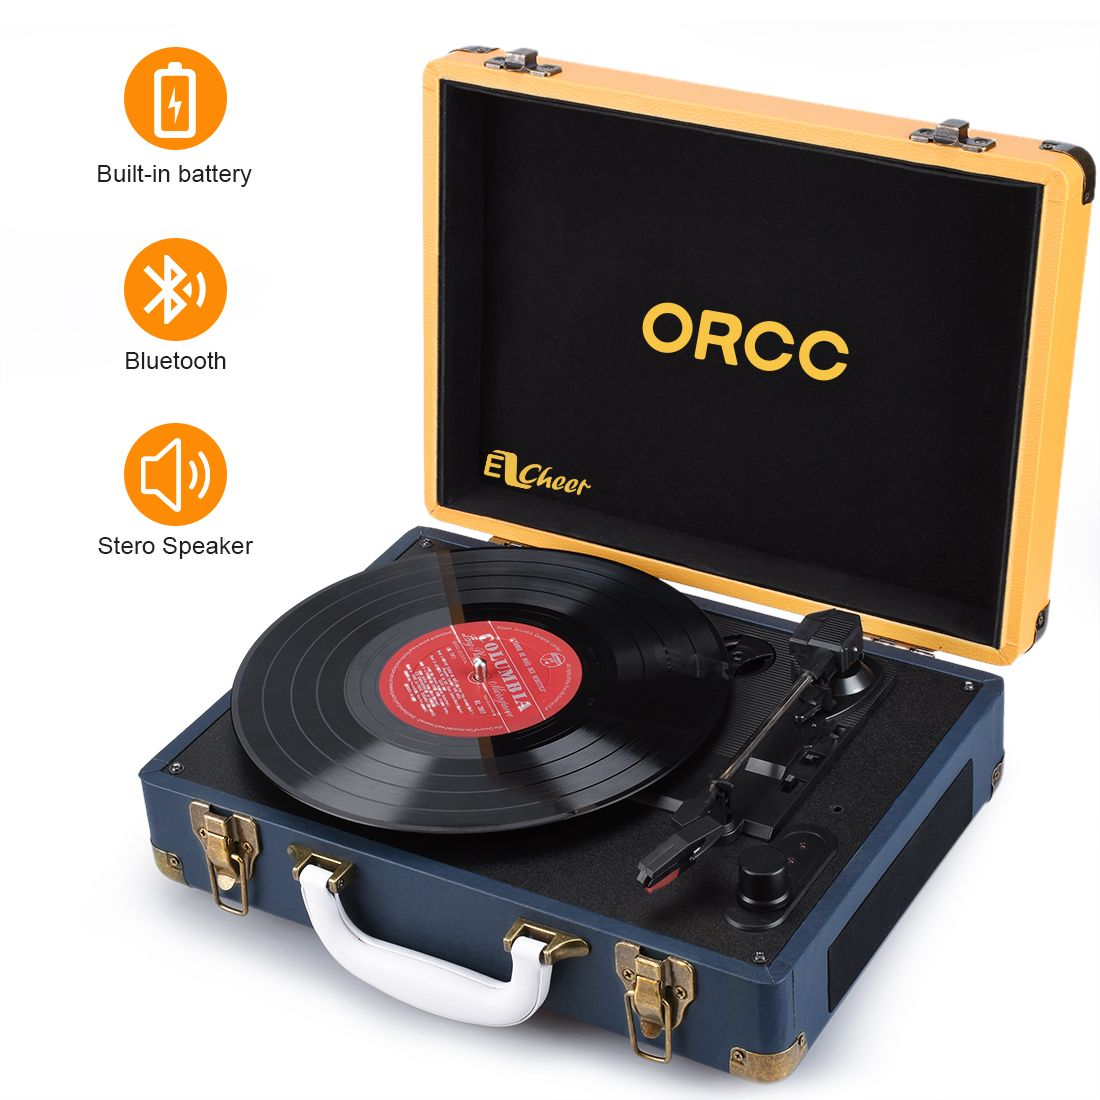 Electronics In 2020 Vinyl Record Player Record Player Turntable